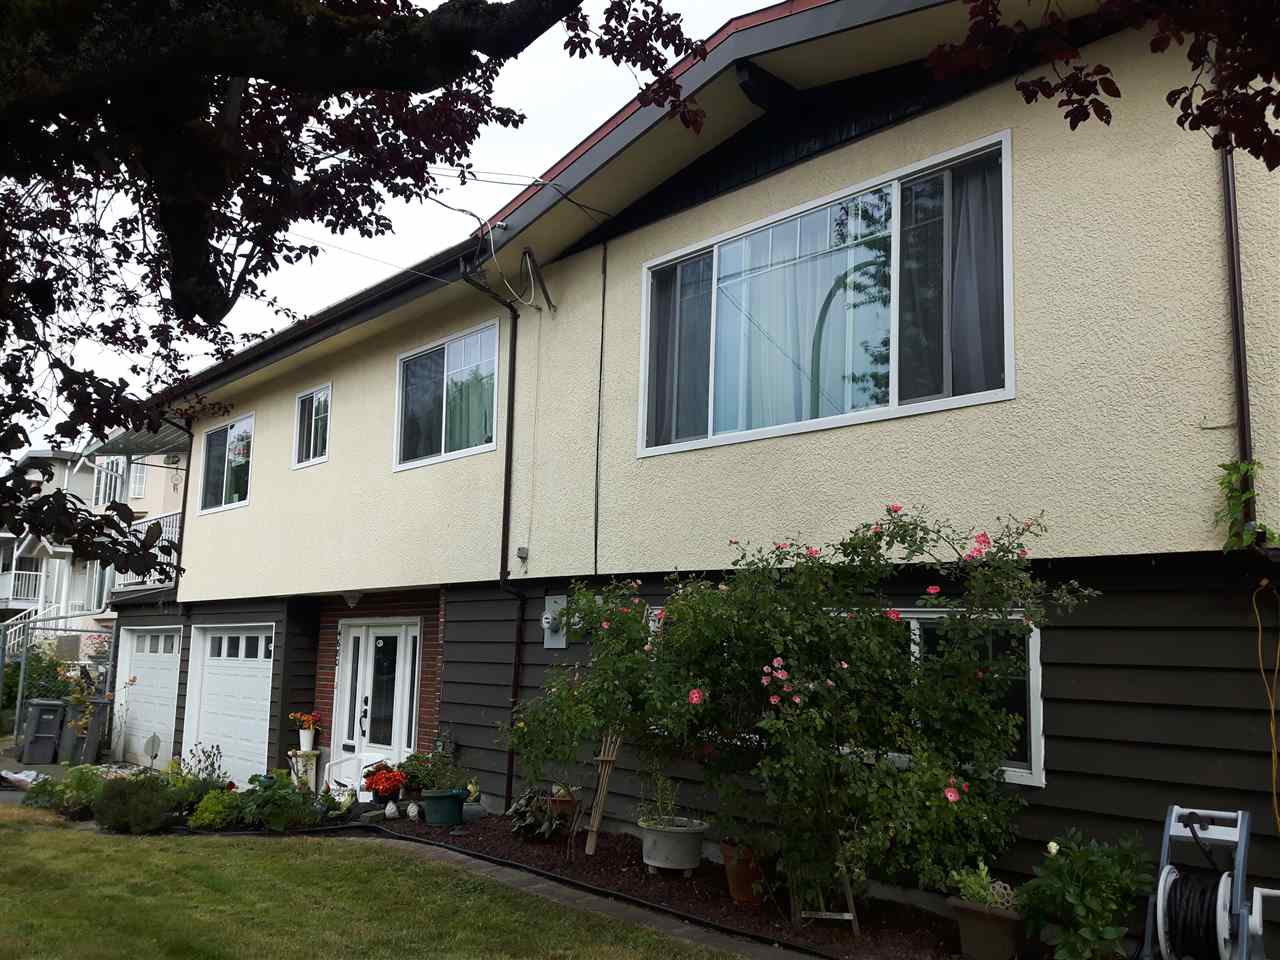 Main Photo: 4680 RAVINE Street in Vancouver: Collingwood VE House for sale (Vancouver East)  : MLS® # R2190455